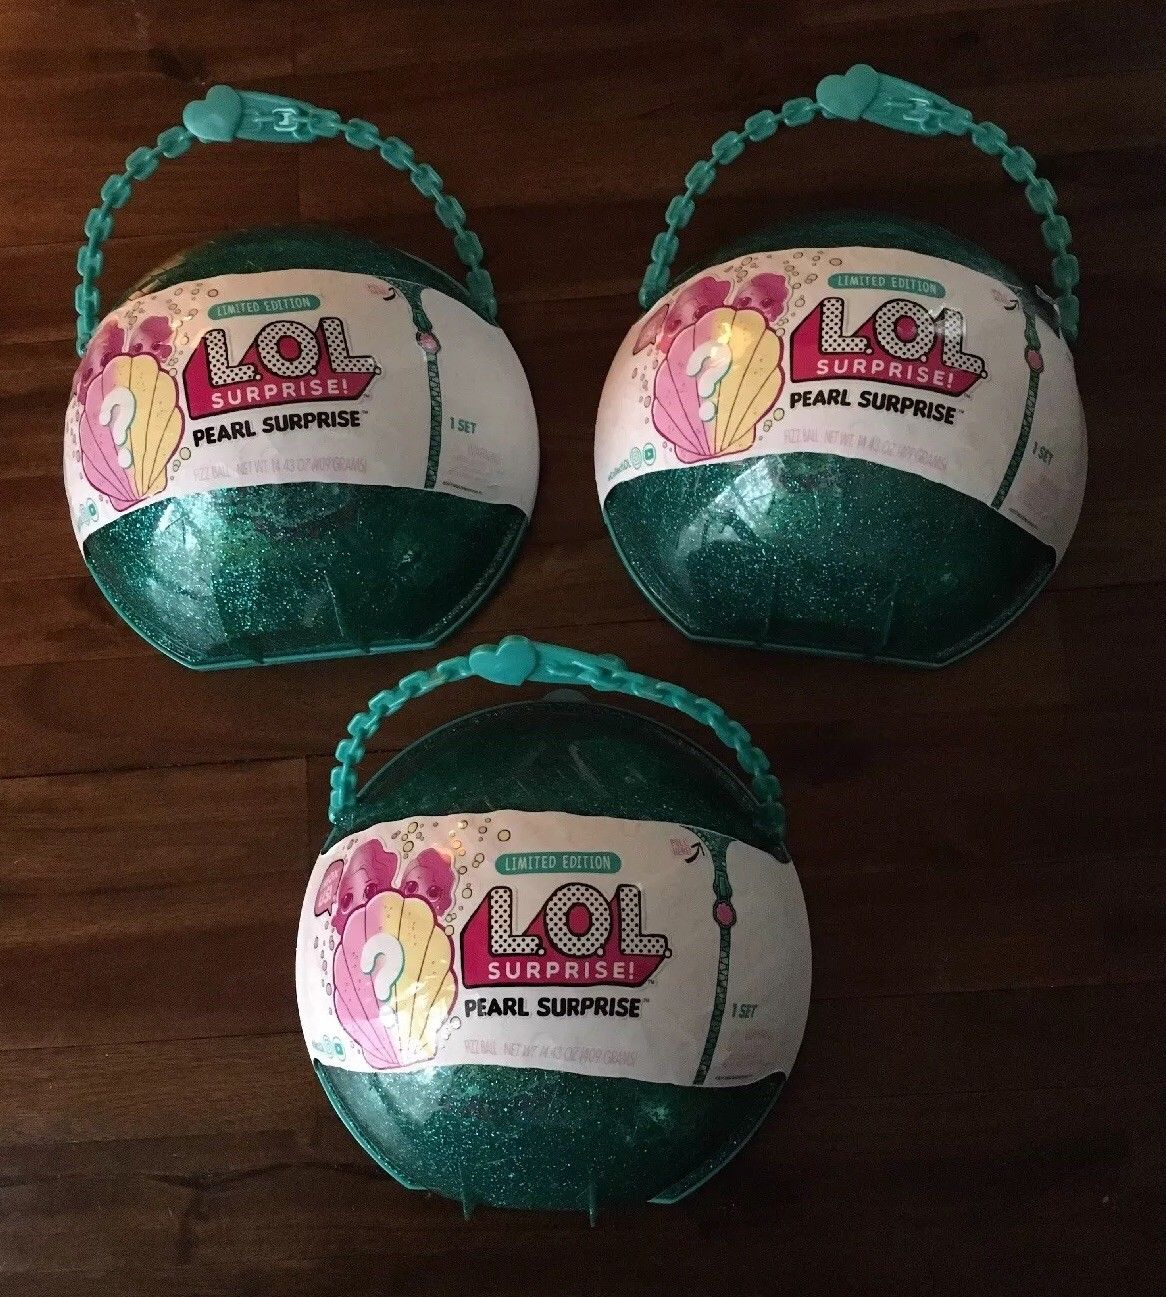 All New L_O_L Surprise! Green Mermaid PEARL SURPRISE Limited Edition Dolls Big Lil Sister